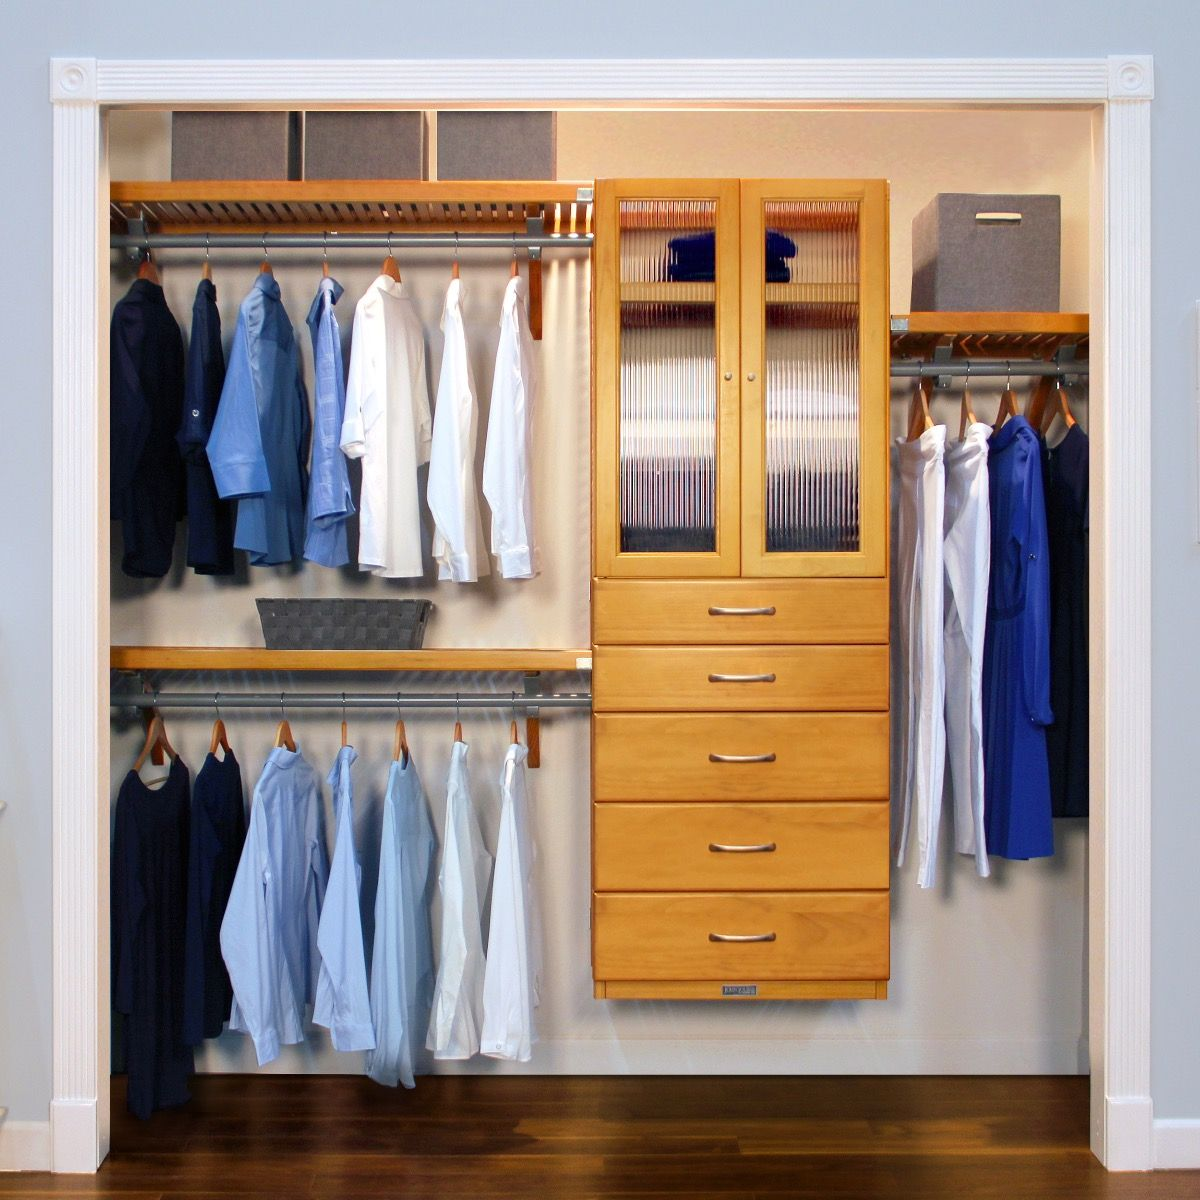 Closet Organizer Kit   16in. Deep Deluxe Wood Closet Organizer With 5  Drawers And Fluted Glass Doors L John Louis Home